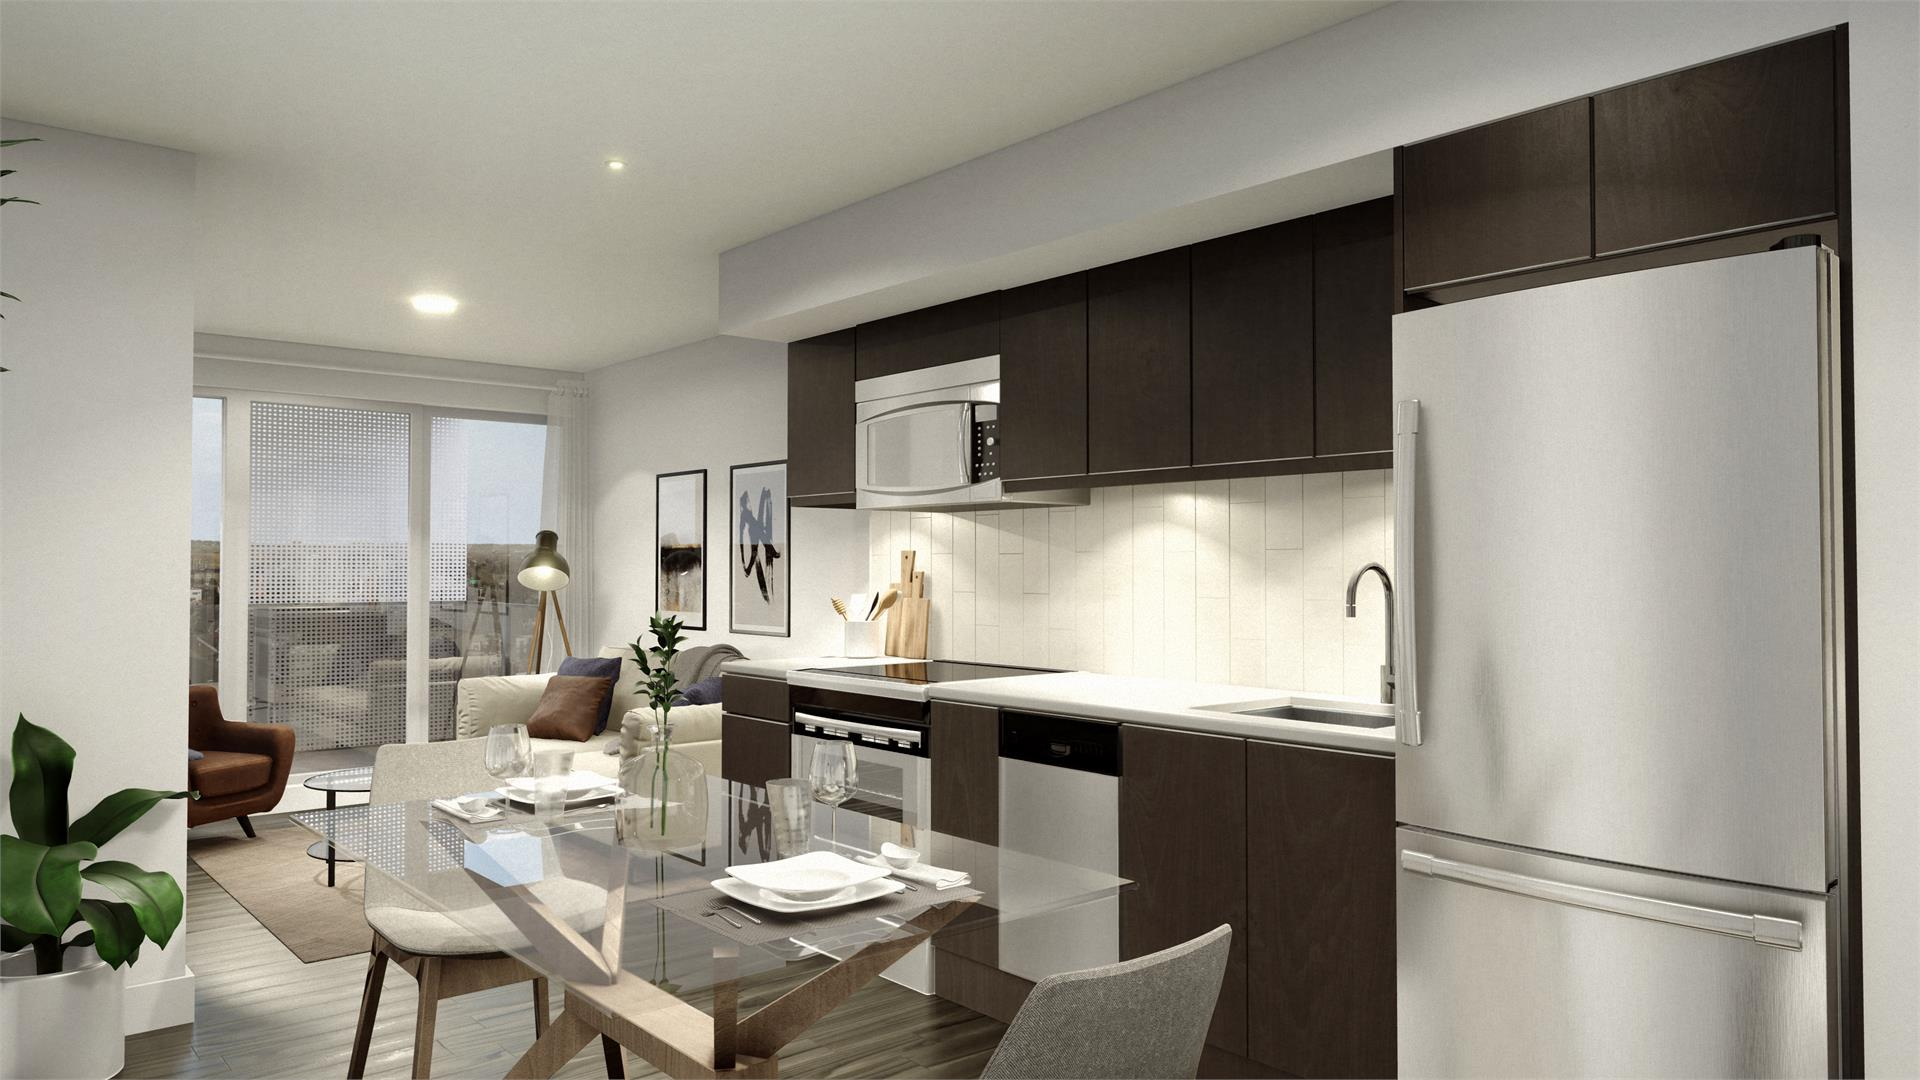 Rendering of Era Condos suite interior kitchen and living room area.